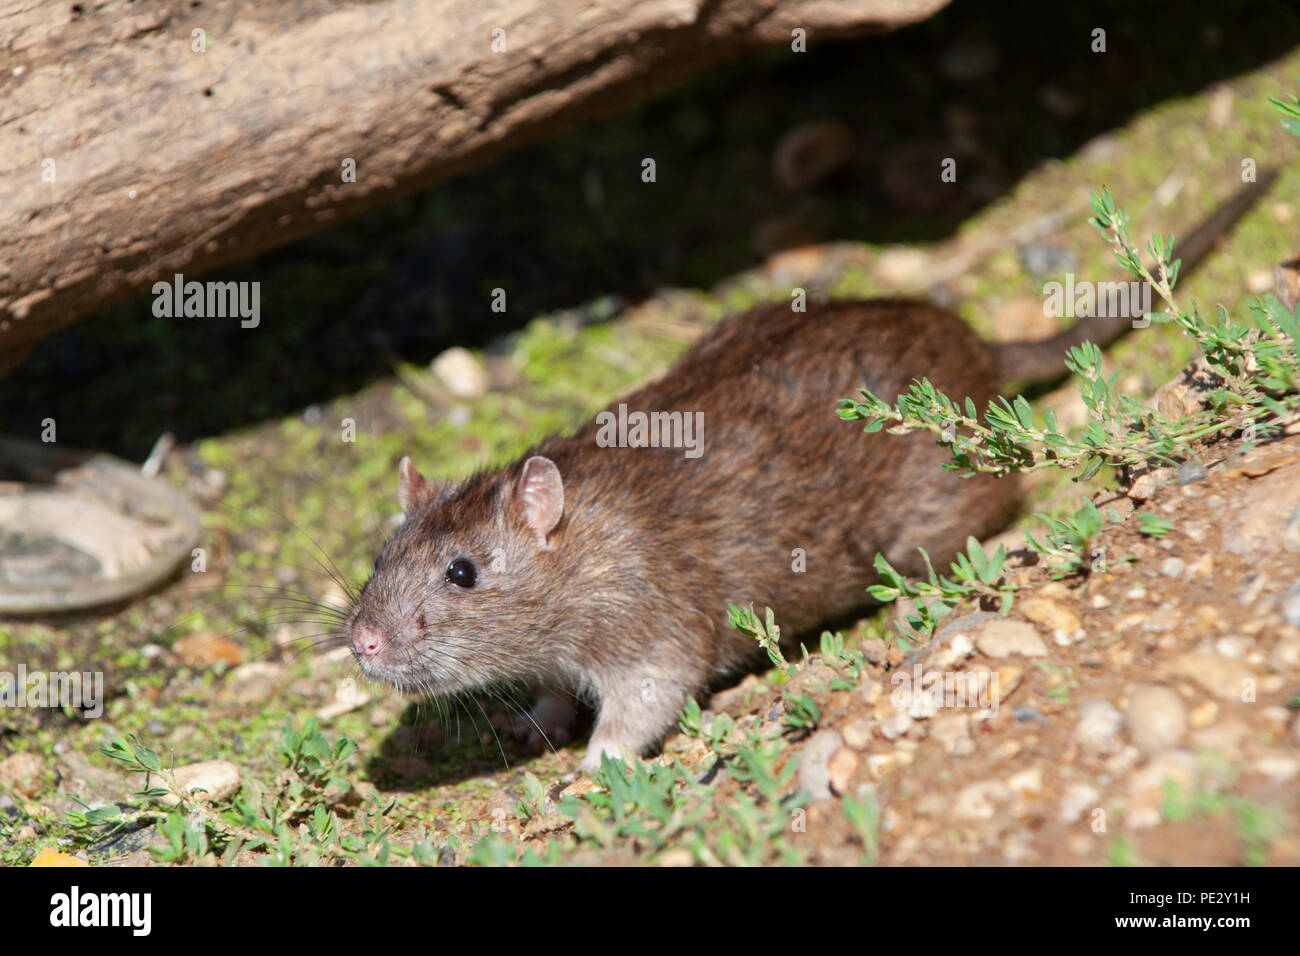 Brown Rat, (Rattus norvegicus), Brent Reservoir, also known as Welsh Harp Reservoir, Brent, London, United Kingdom - Stock Image